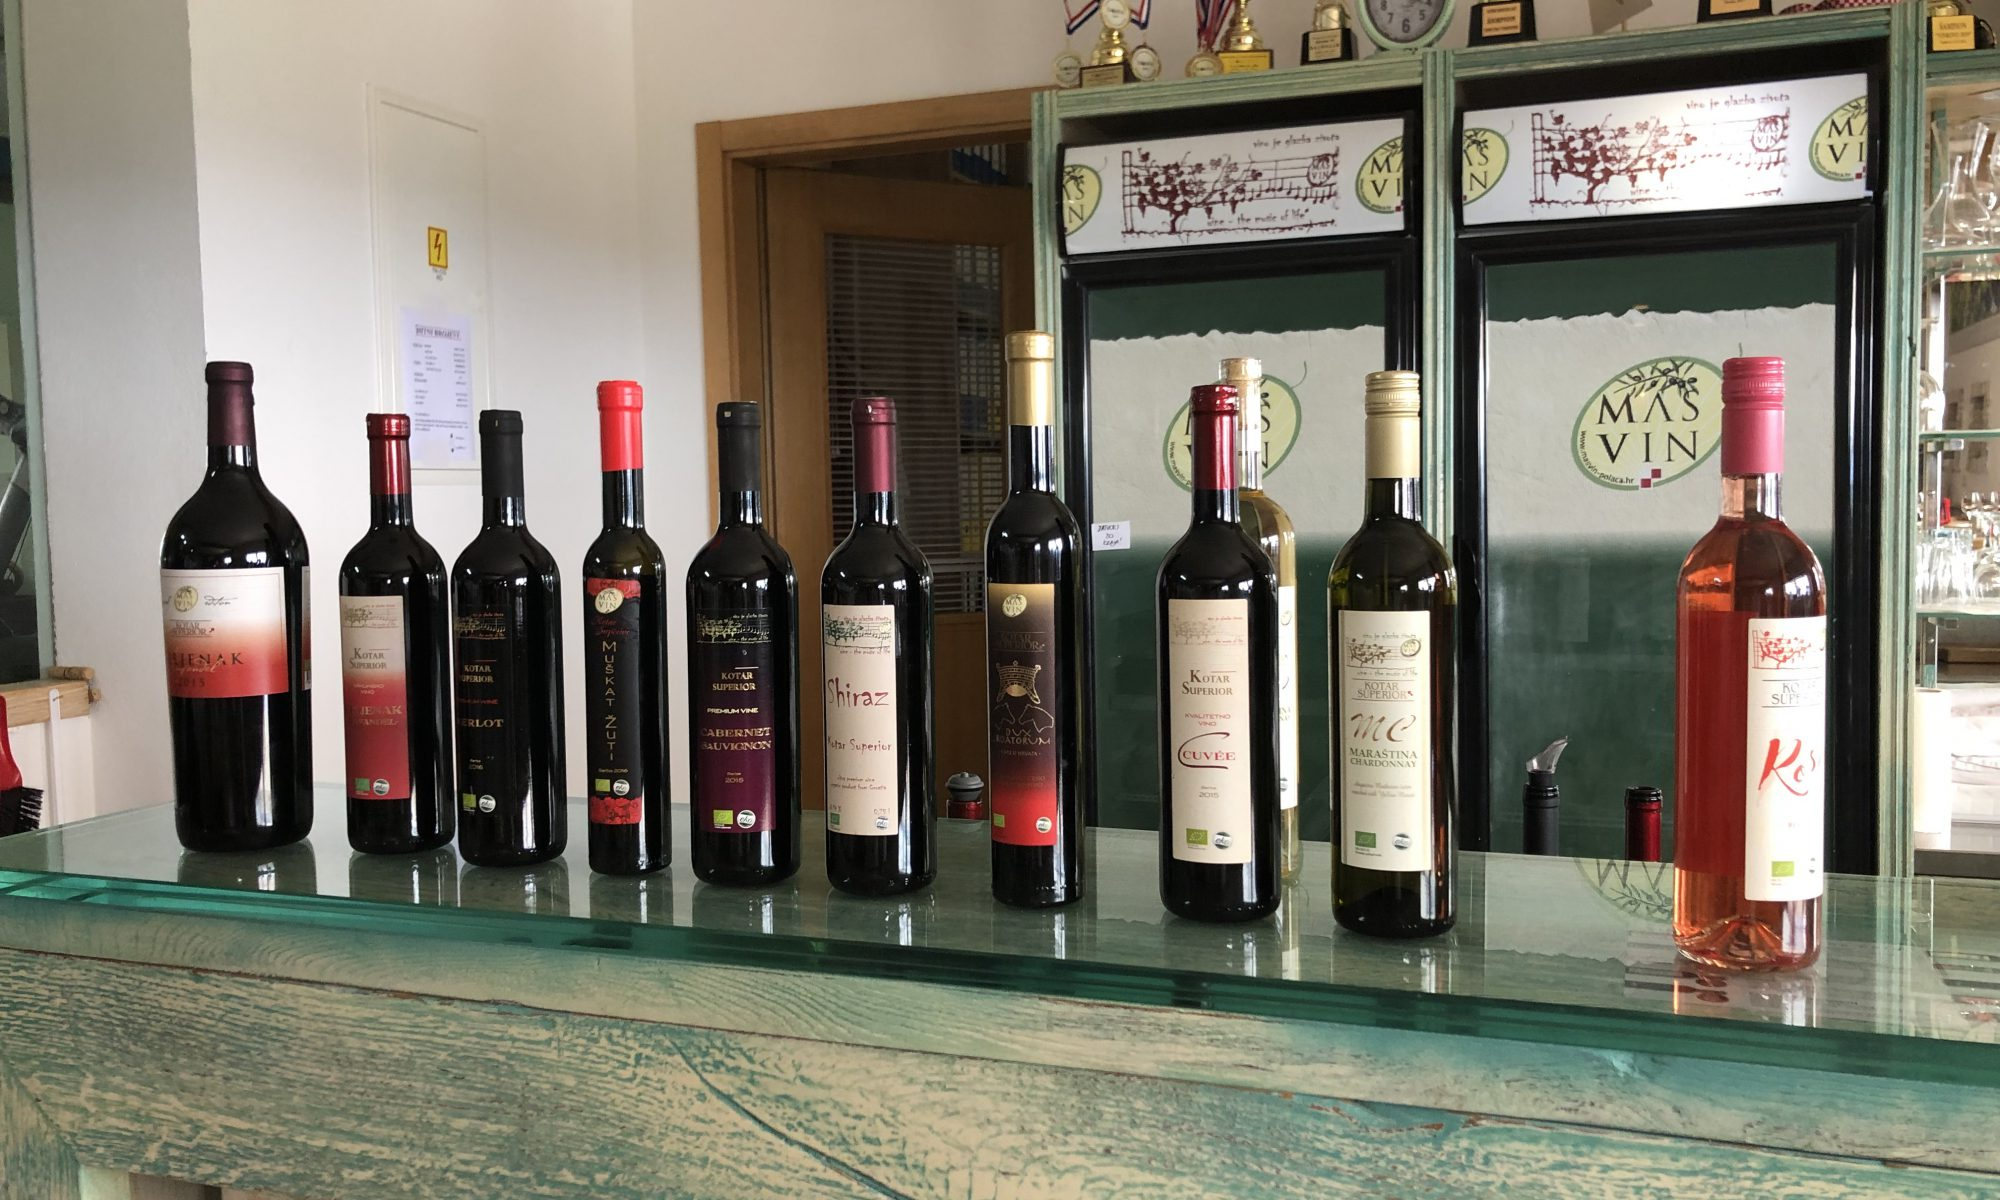 A collection of Mas Vin current selection.